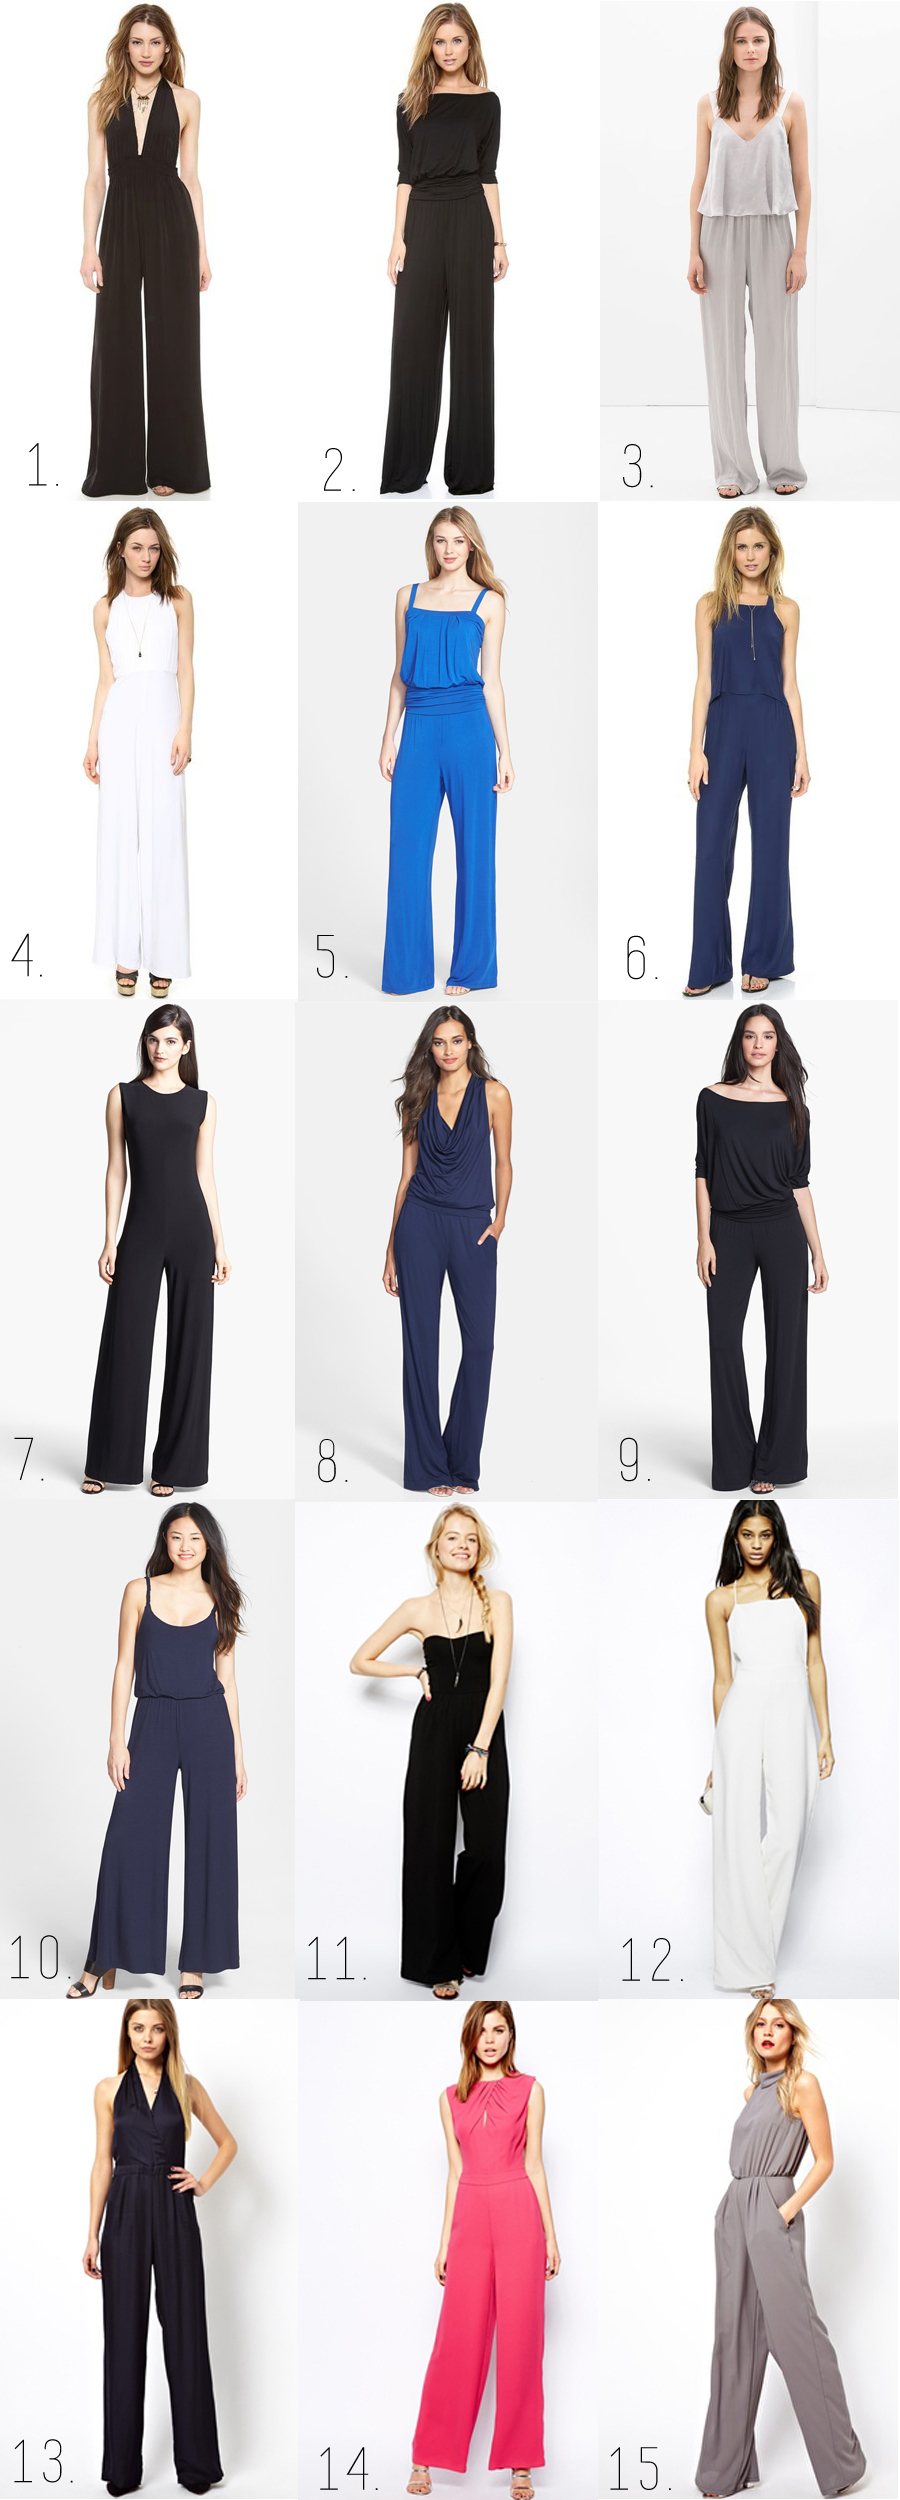 excuse-my-blog-jump-suits-so-many-kinds-3